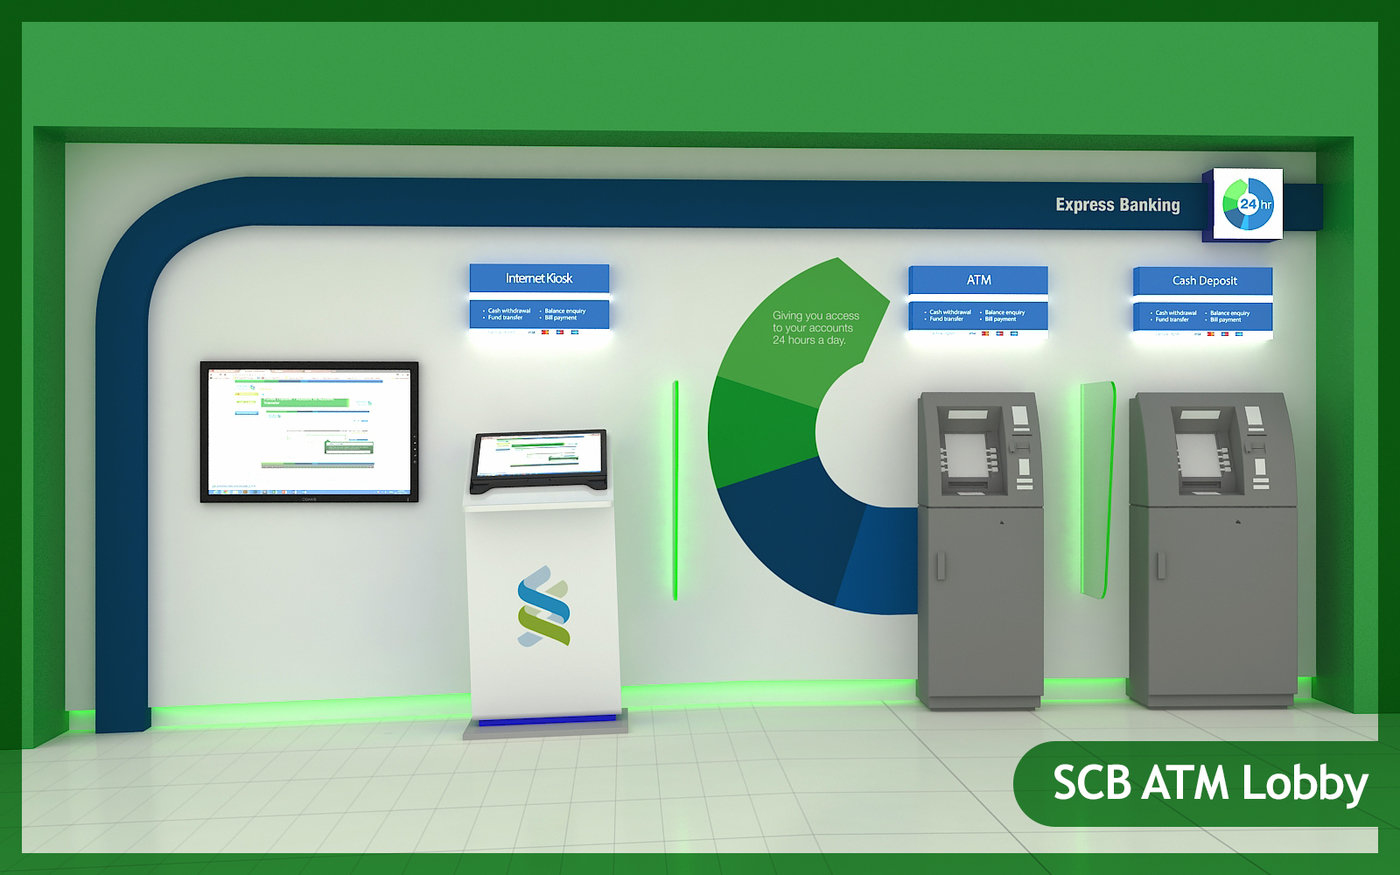 Standard Exhibition Stall : Atm lobby design for standard chartared bank by umair khan